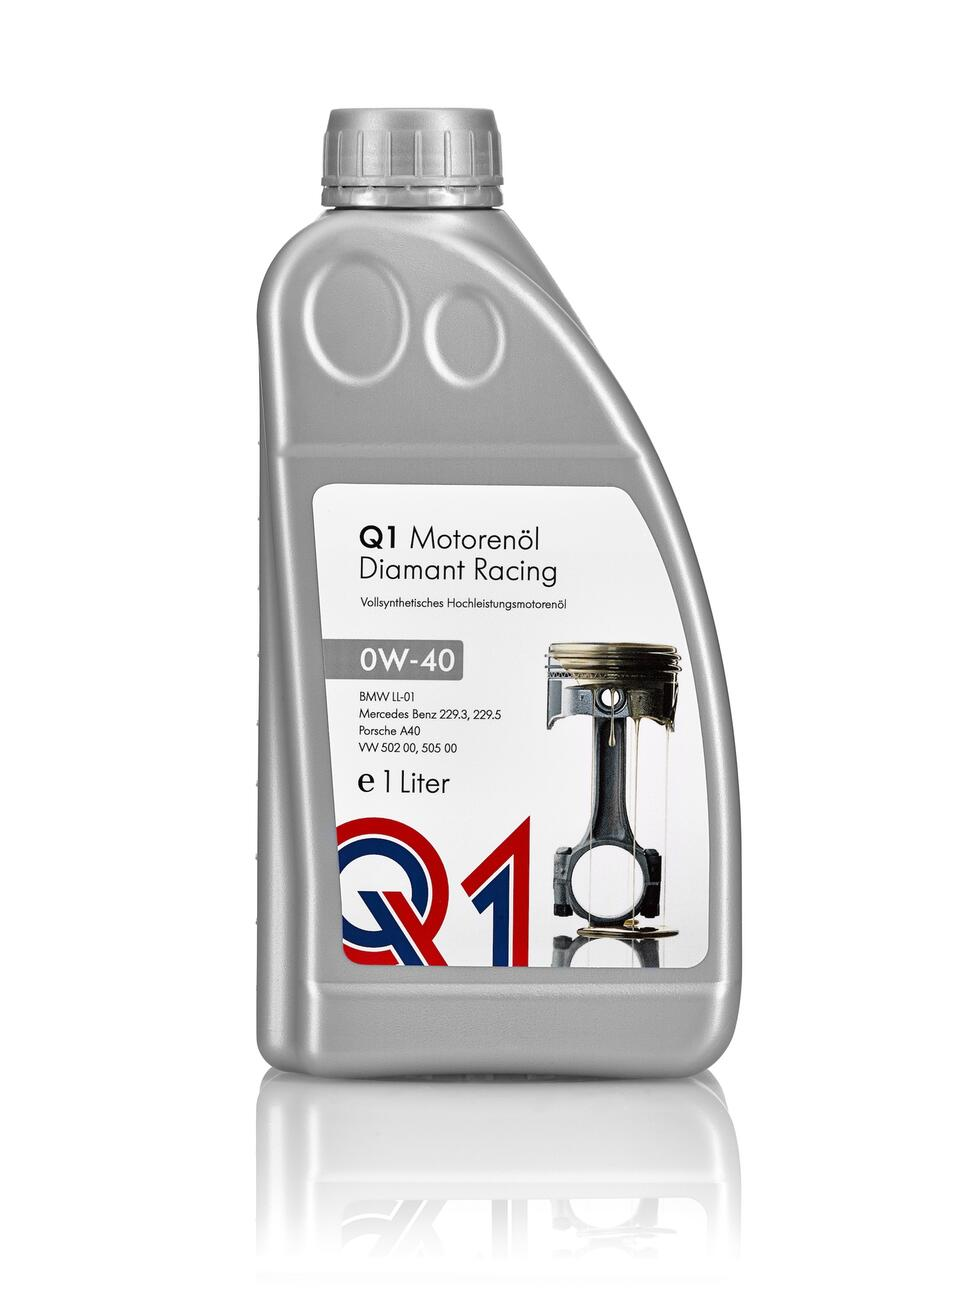 Q1 Motorenöl Diamant Racing 0W-40